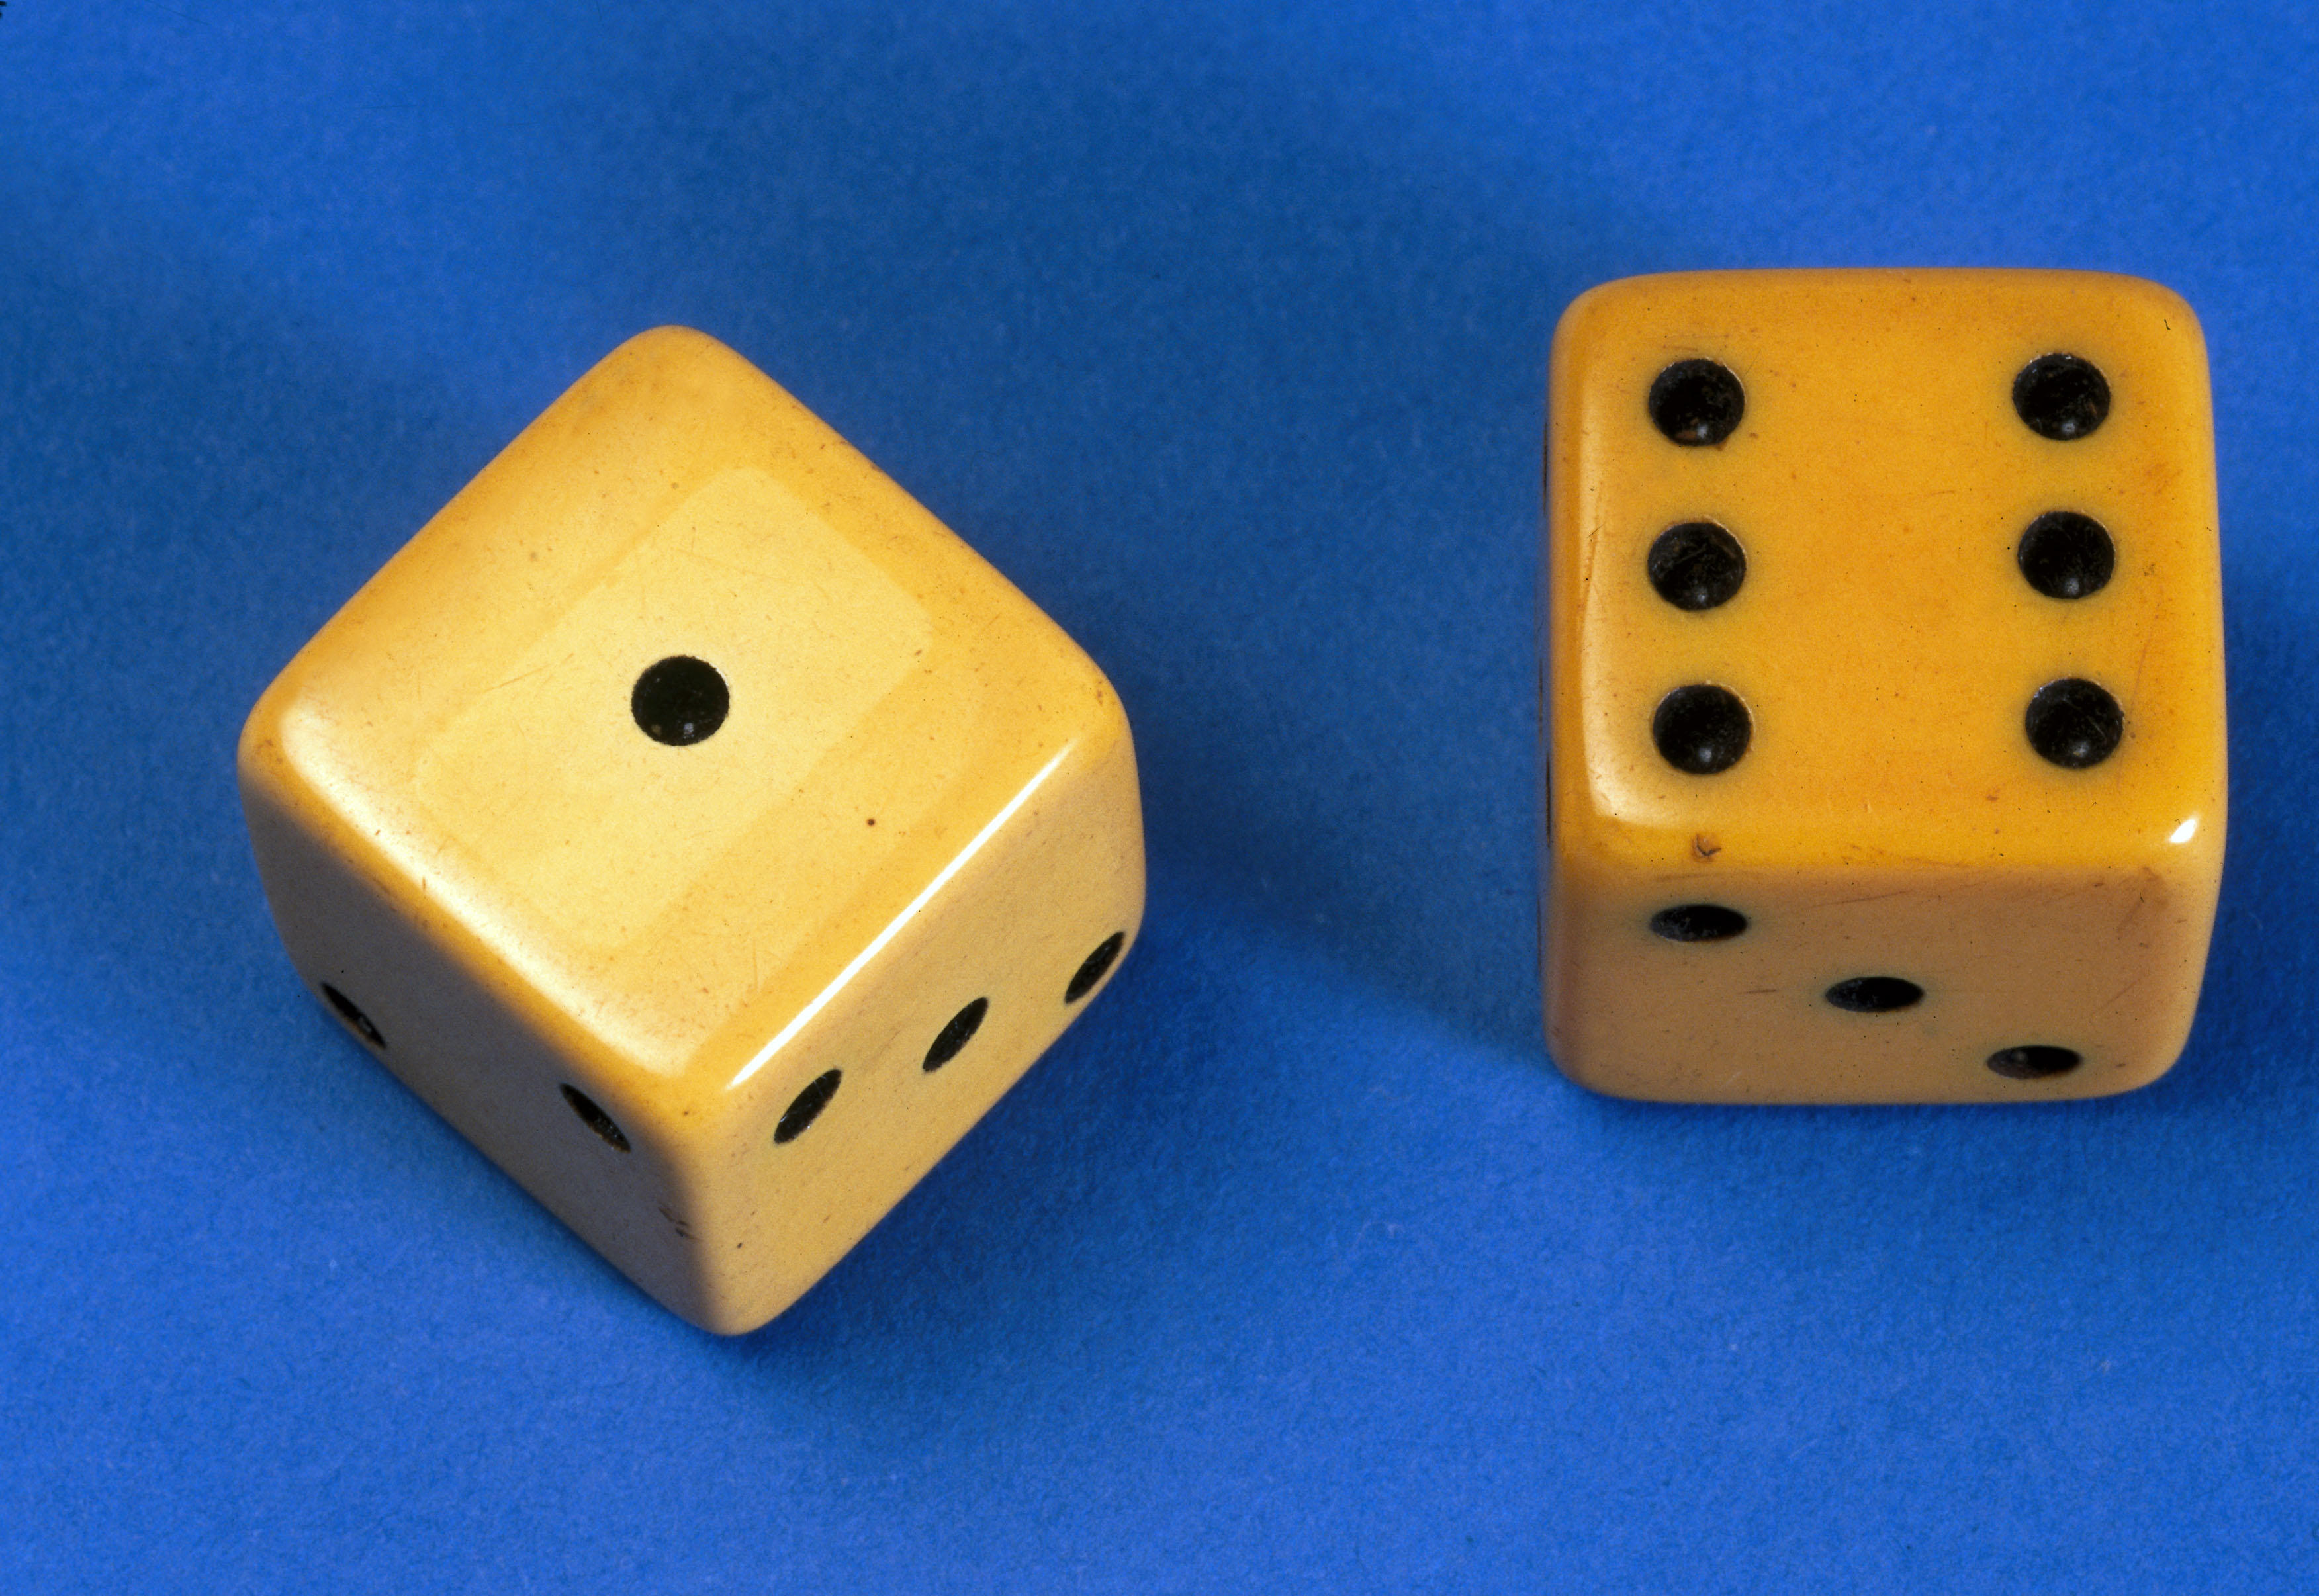 A pair of dice made in imitation ivory celluloid, early 20th century.